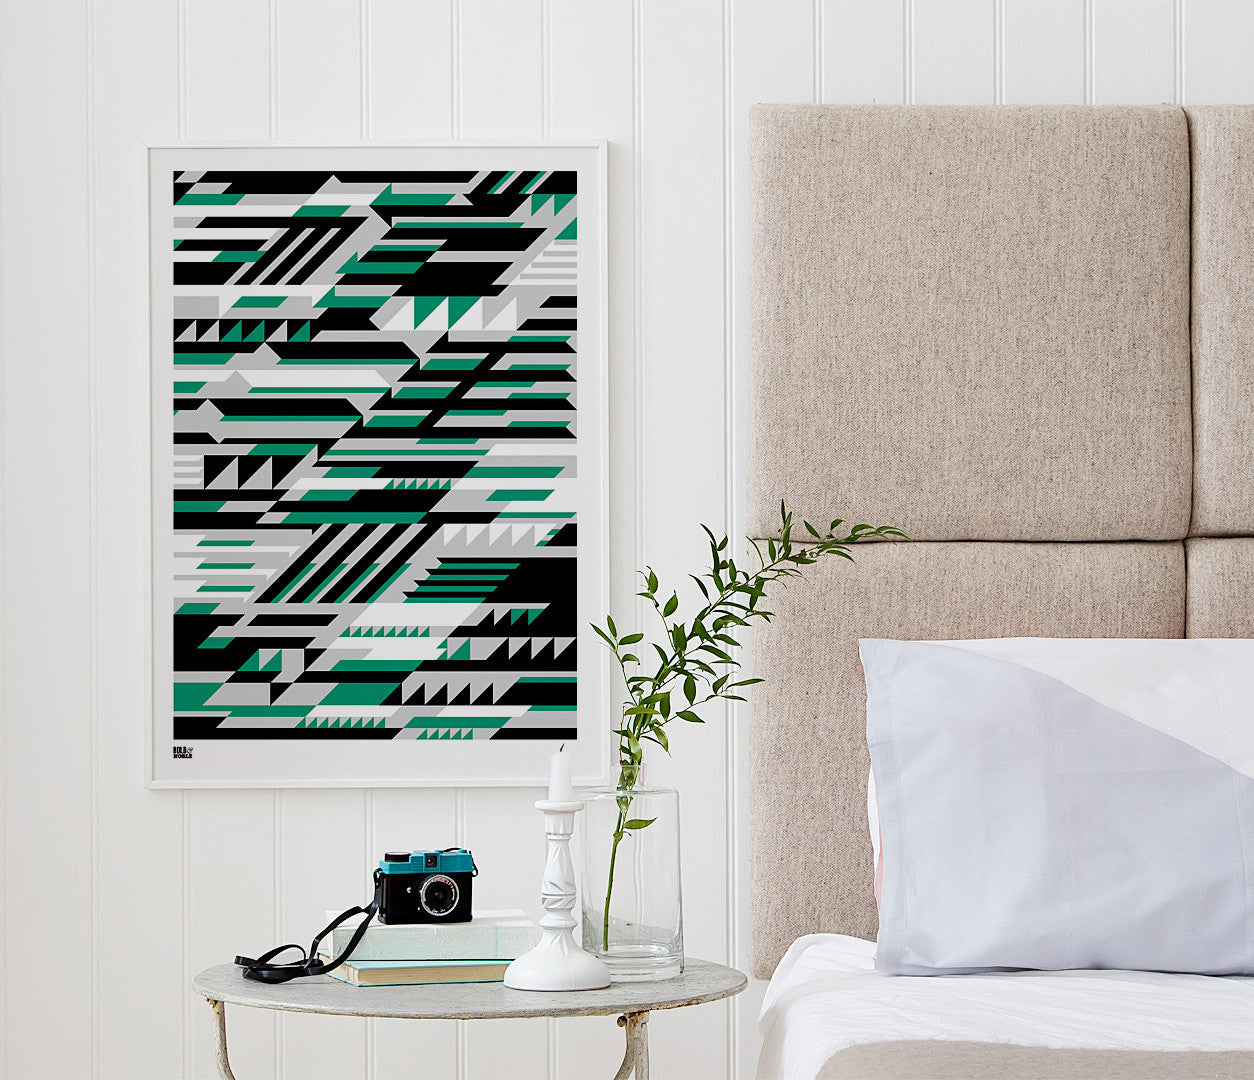 Pictures and Wall Art, Screen Printed Faster Geometric Screen Print in Green and Grey